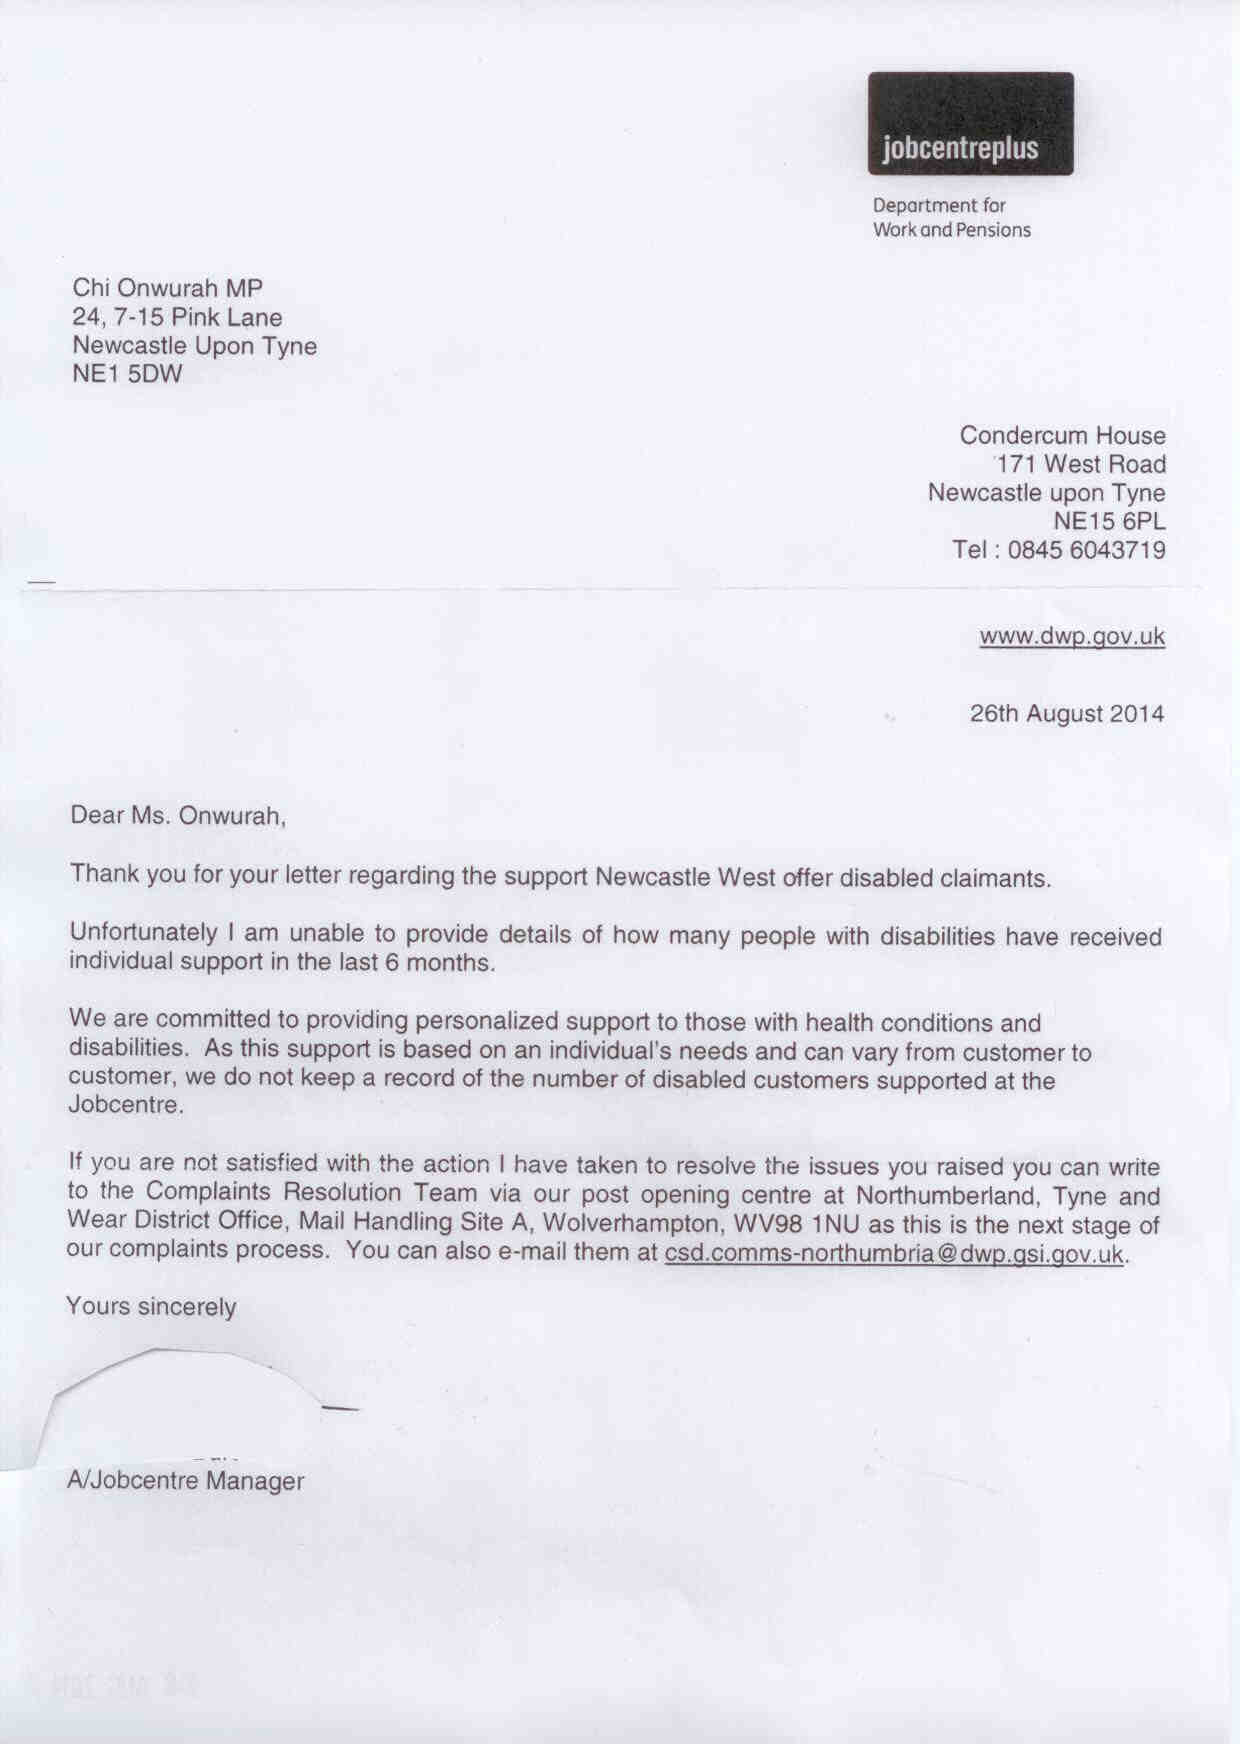 Jobcentre Plus reply regarding support for disabled claimants